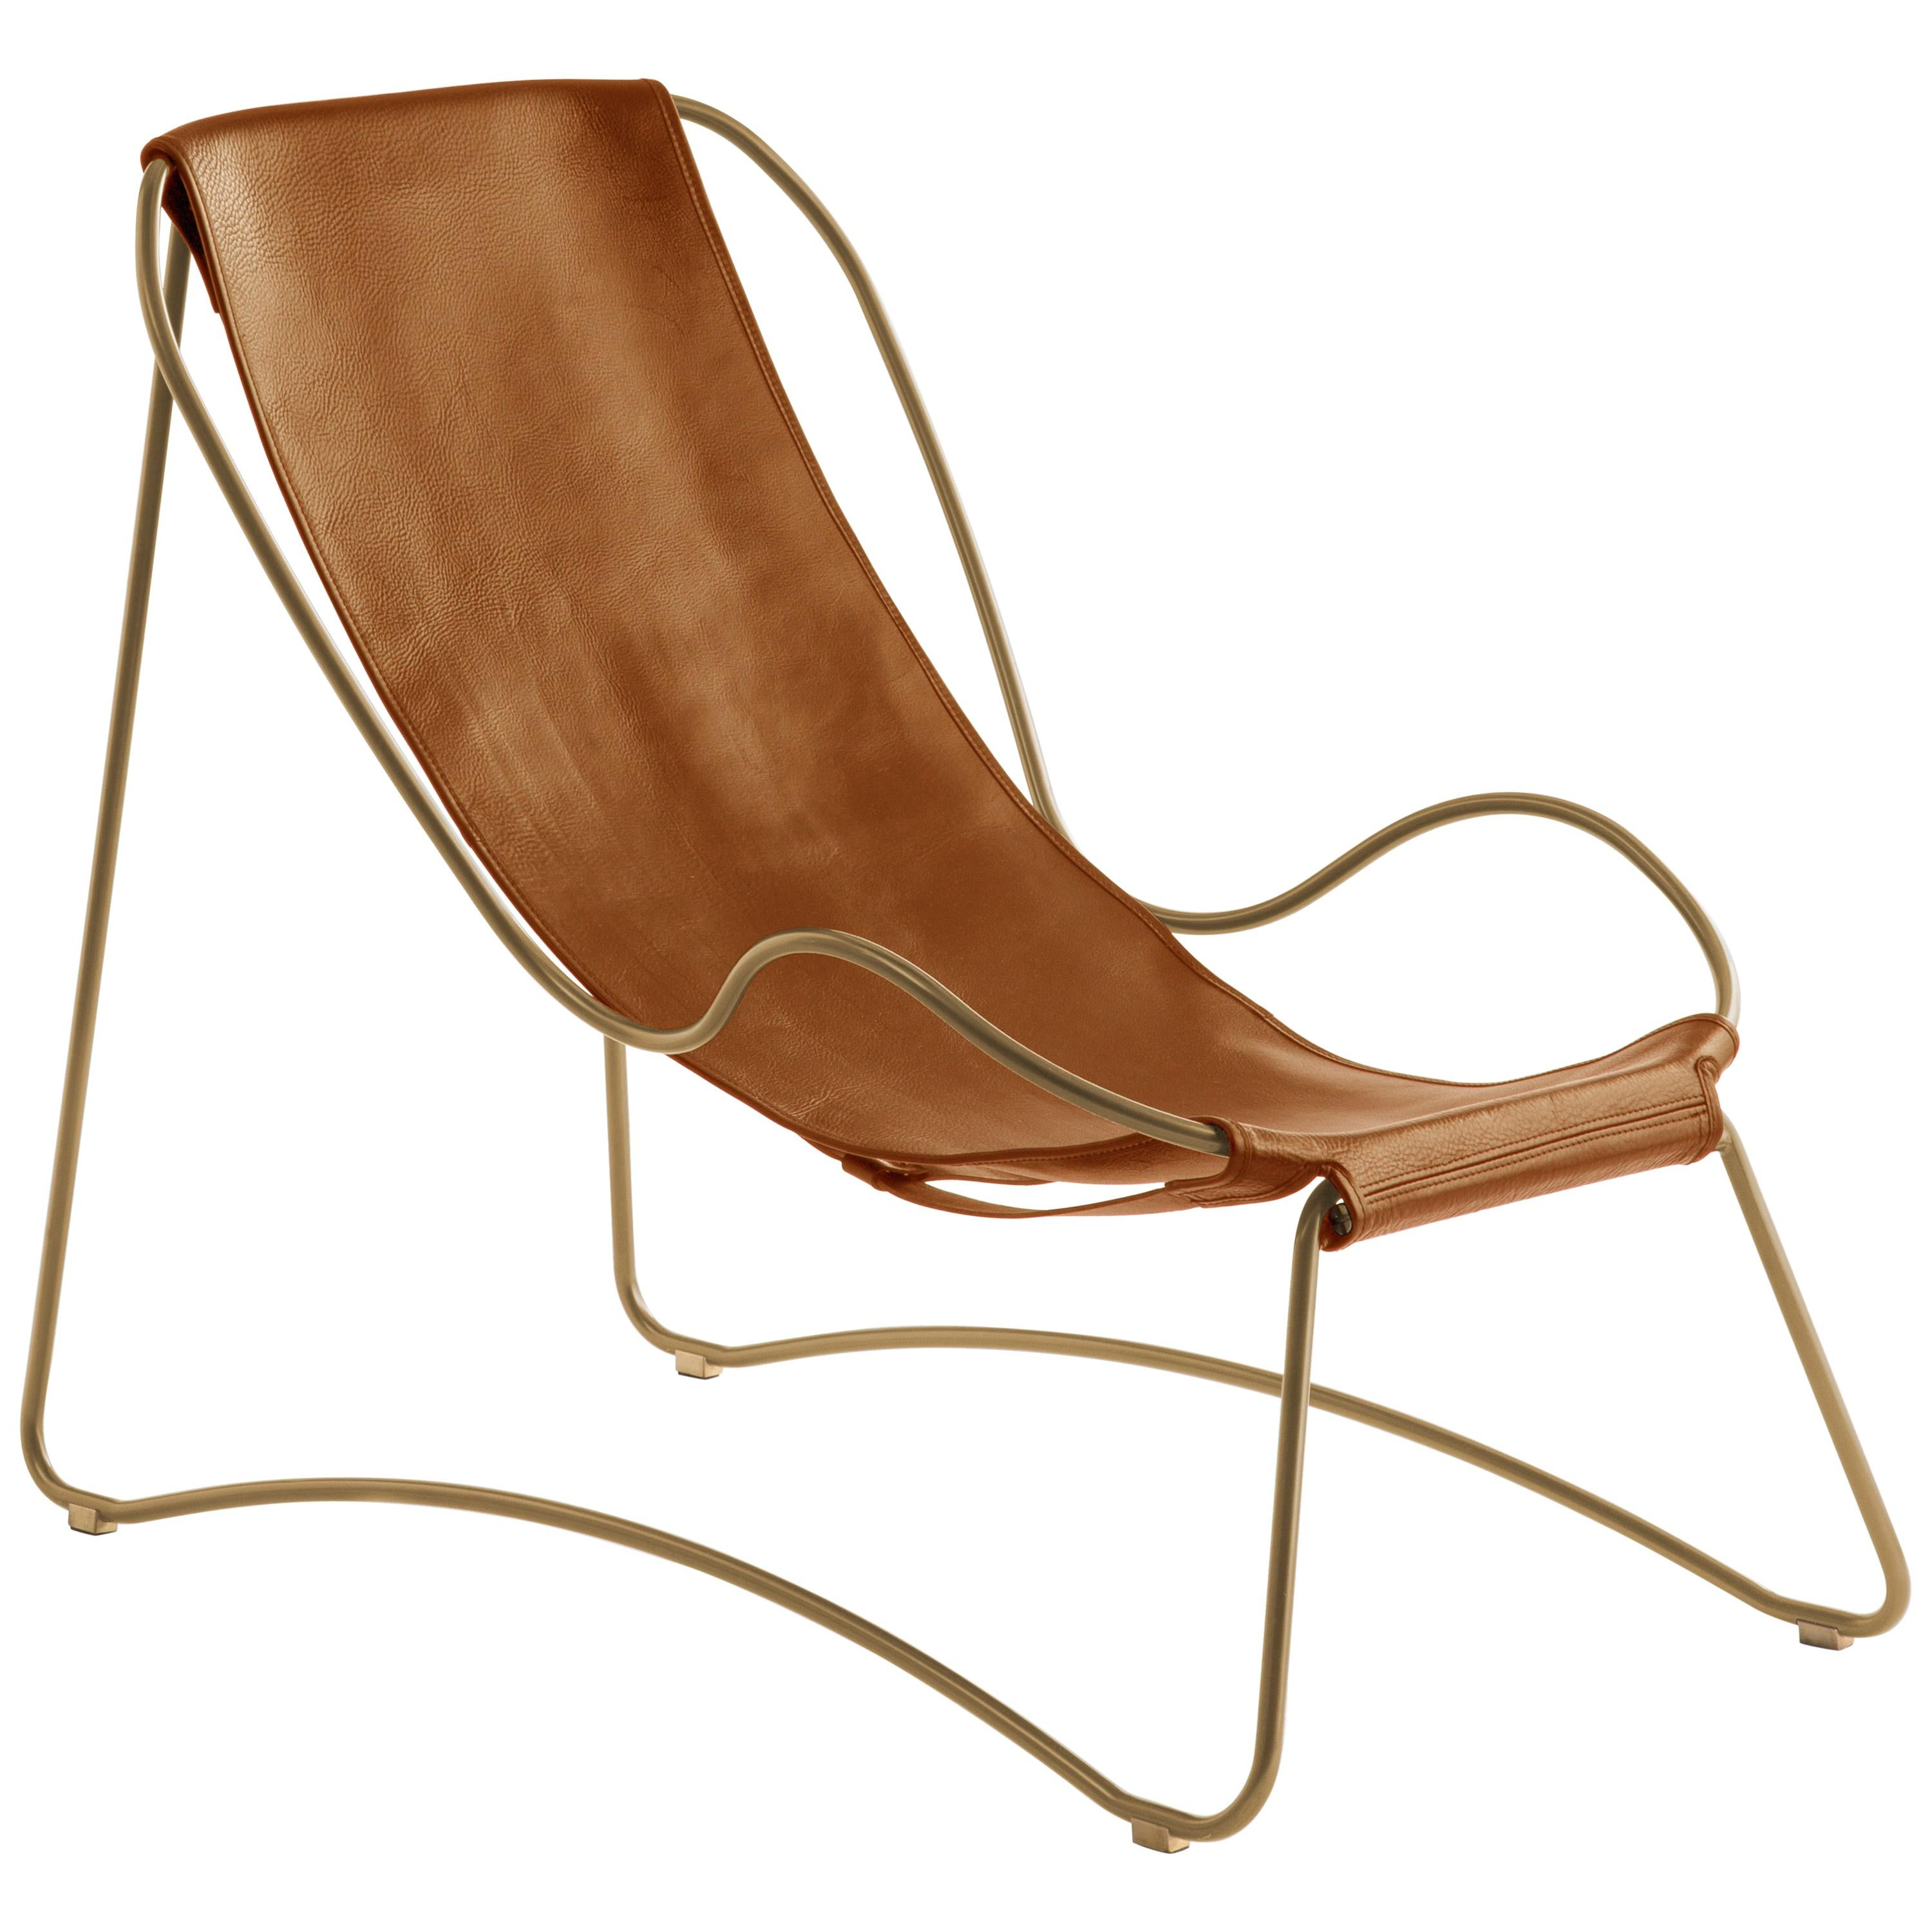 Chaise Longue Aged Brass Steel & Natural Tobacco Leather, Modern Style